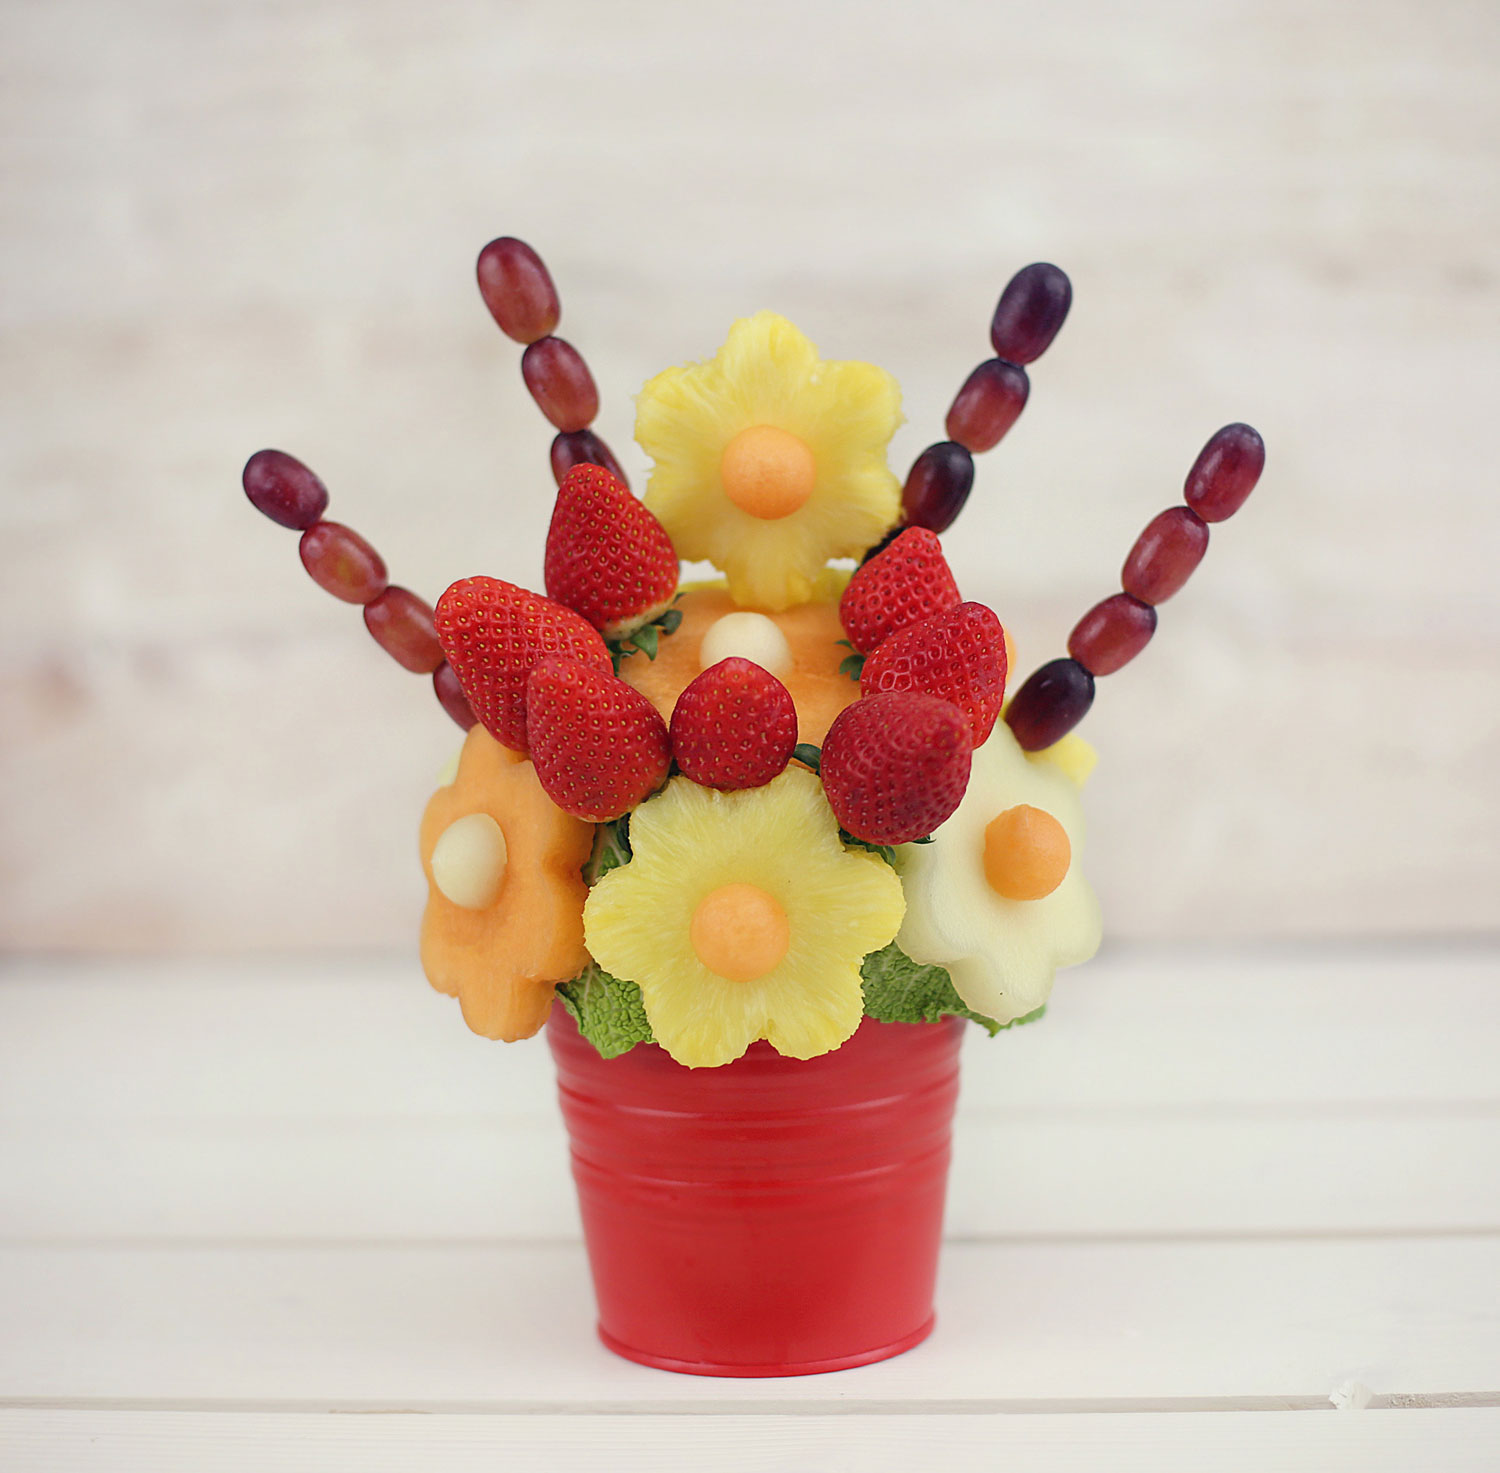 Blooming flowers edible fruit bouquet Fruit bouquet